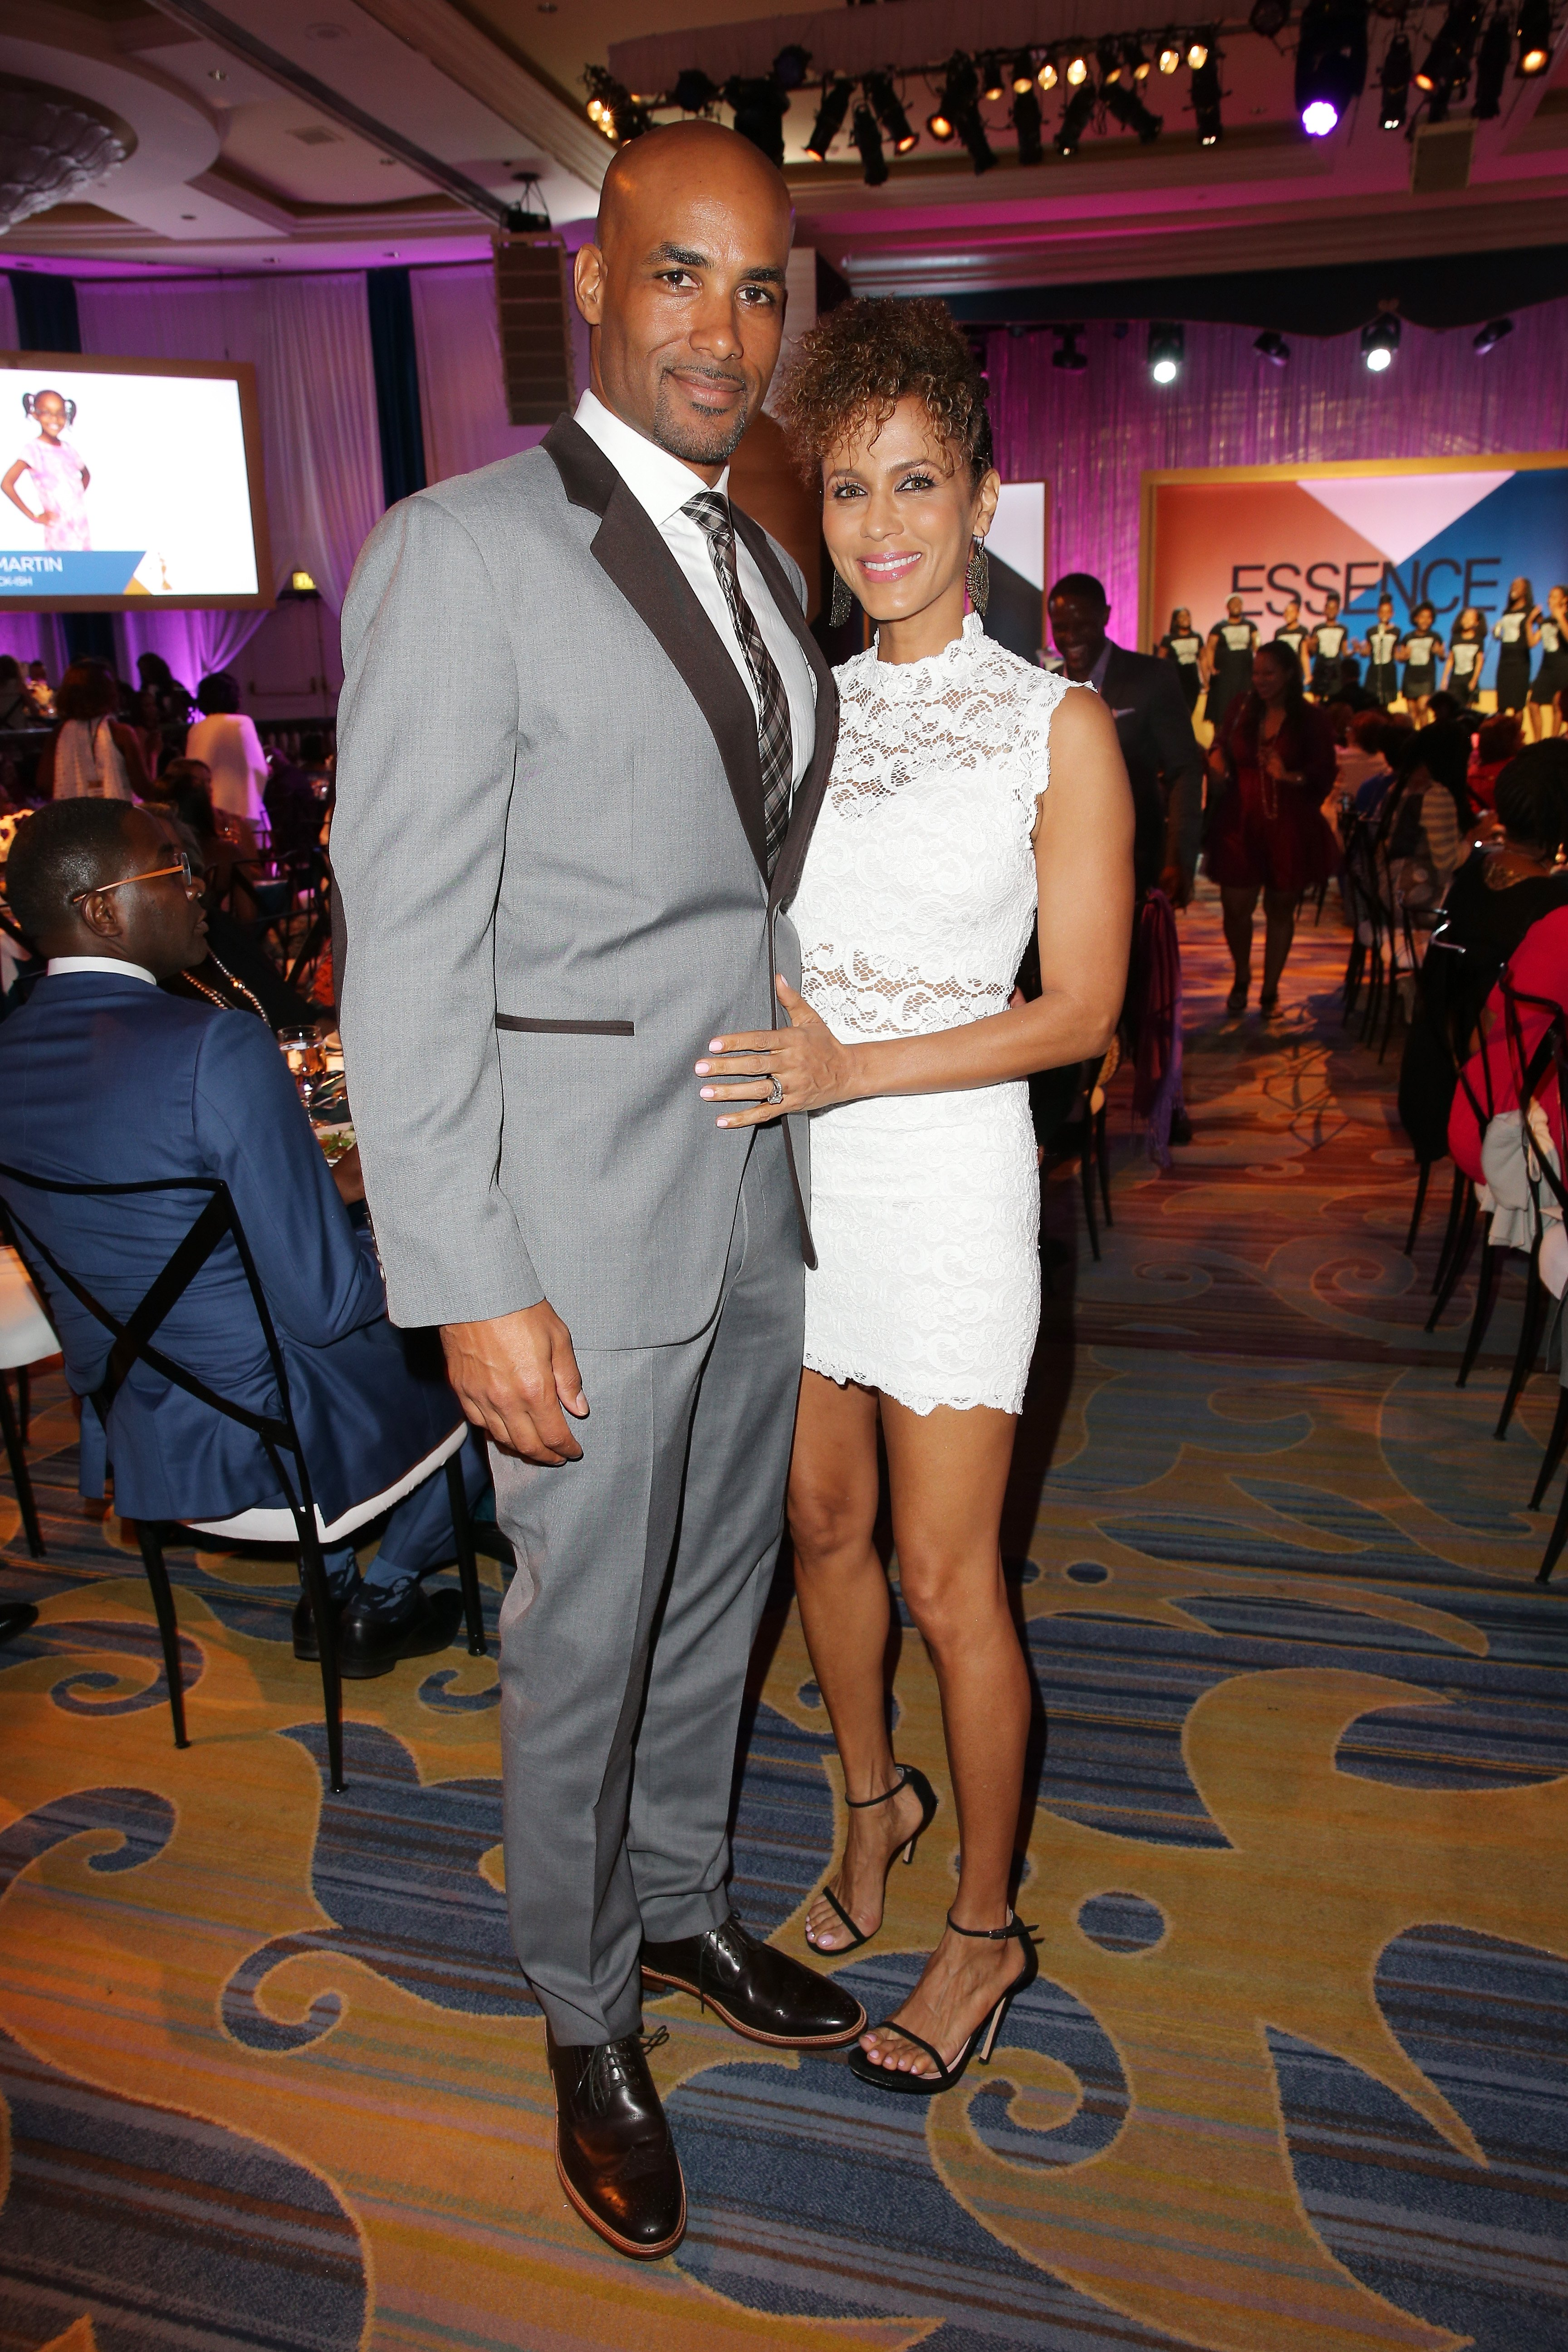 Boris Kodjoe and Nicole Ari Parker attend the 2016 ESSENCE Black Women In Hollywood awards luncheon on February 25, 2016 in Beverly Hills, California. | Source: Getty Images